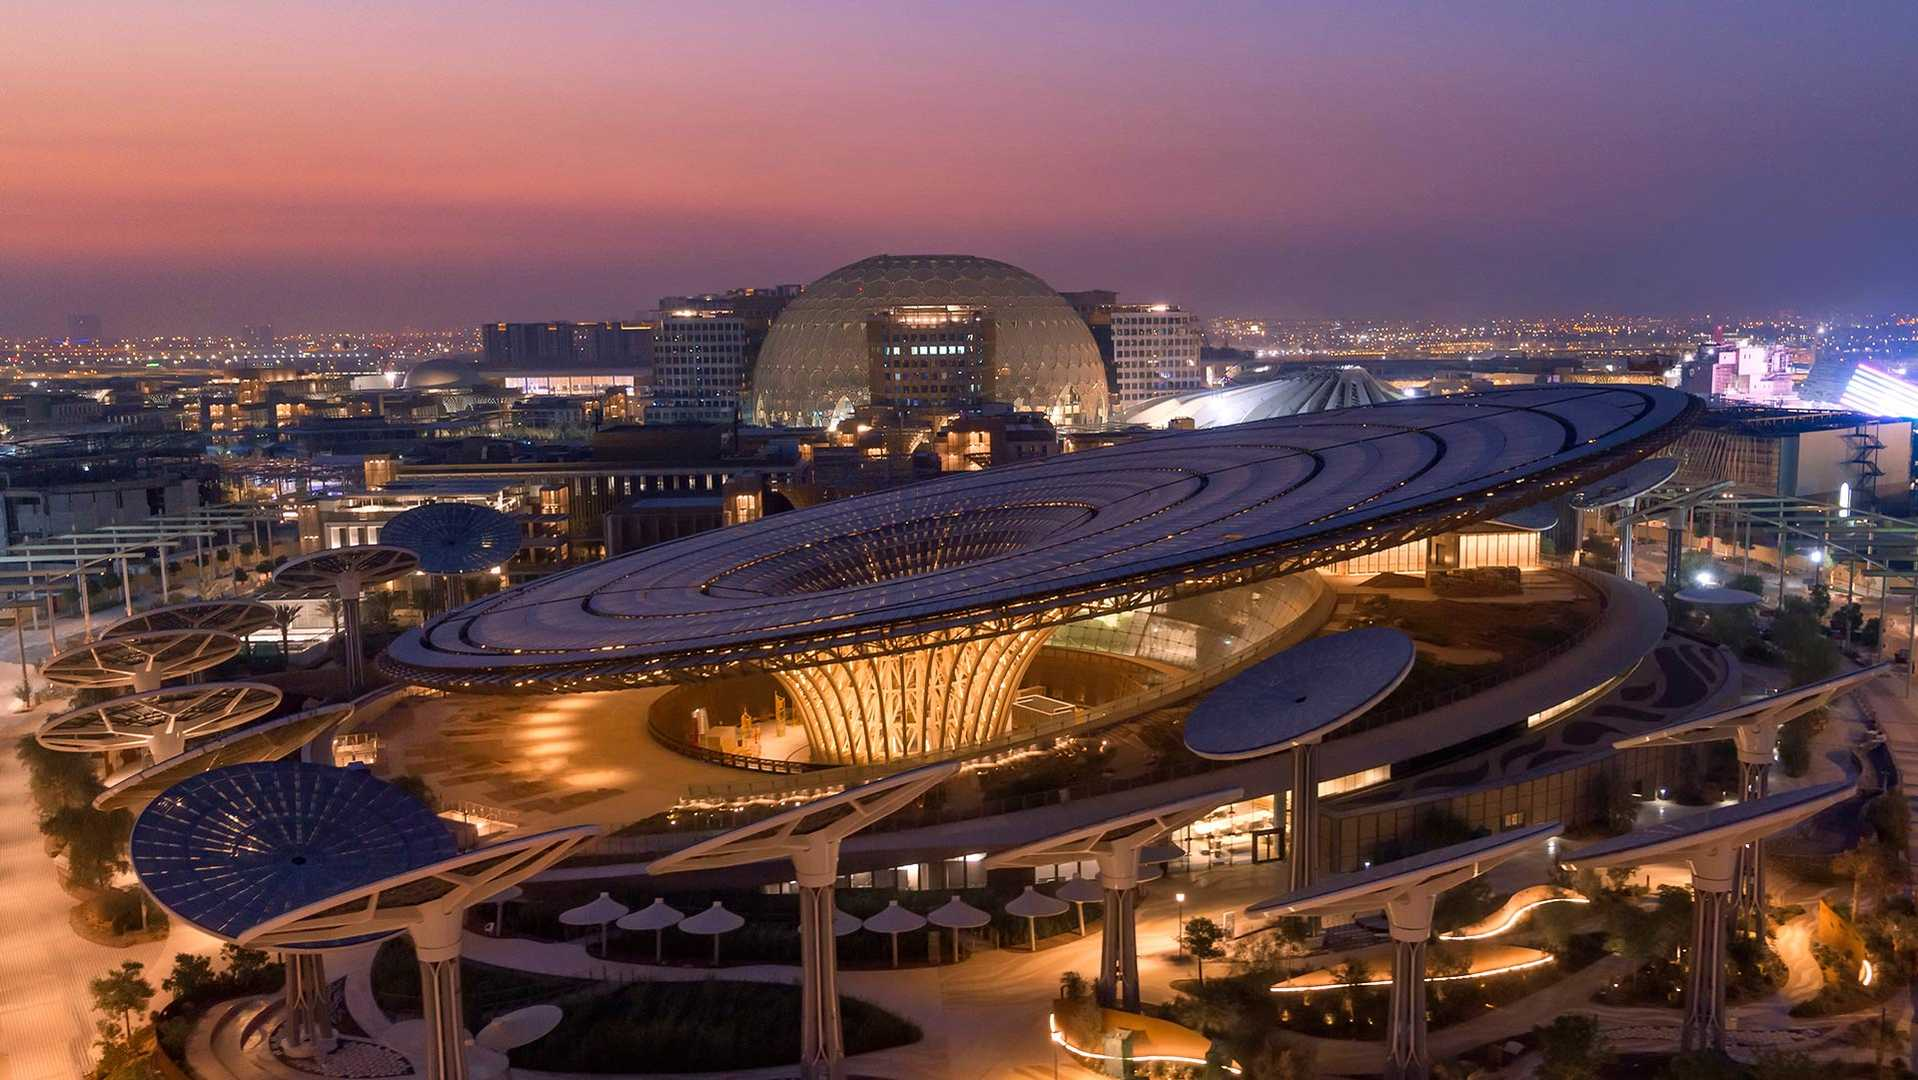 Expo 2020 Dubai to Catalyze the Pace of UAE's Real Estate Sector